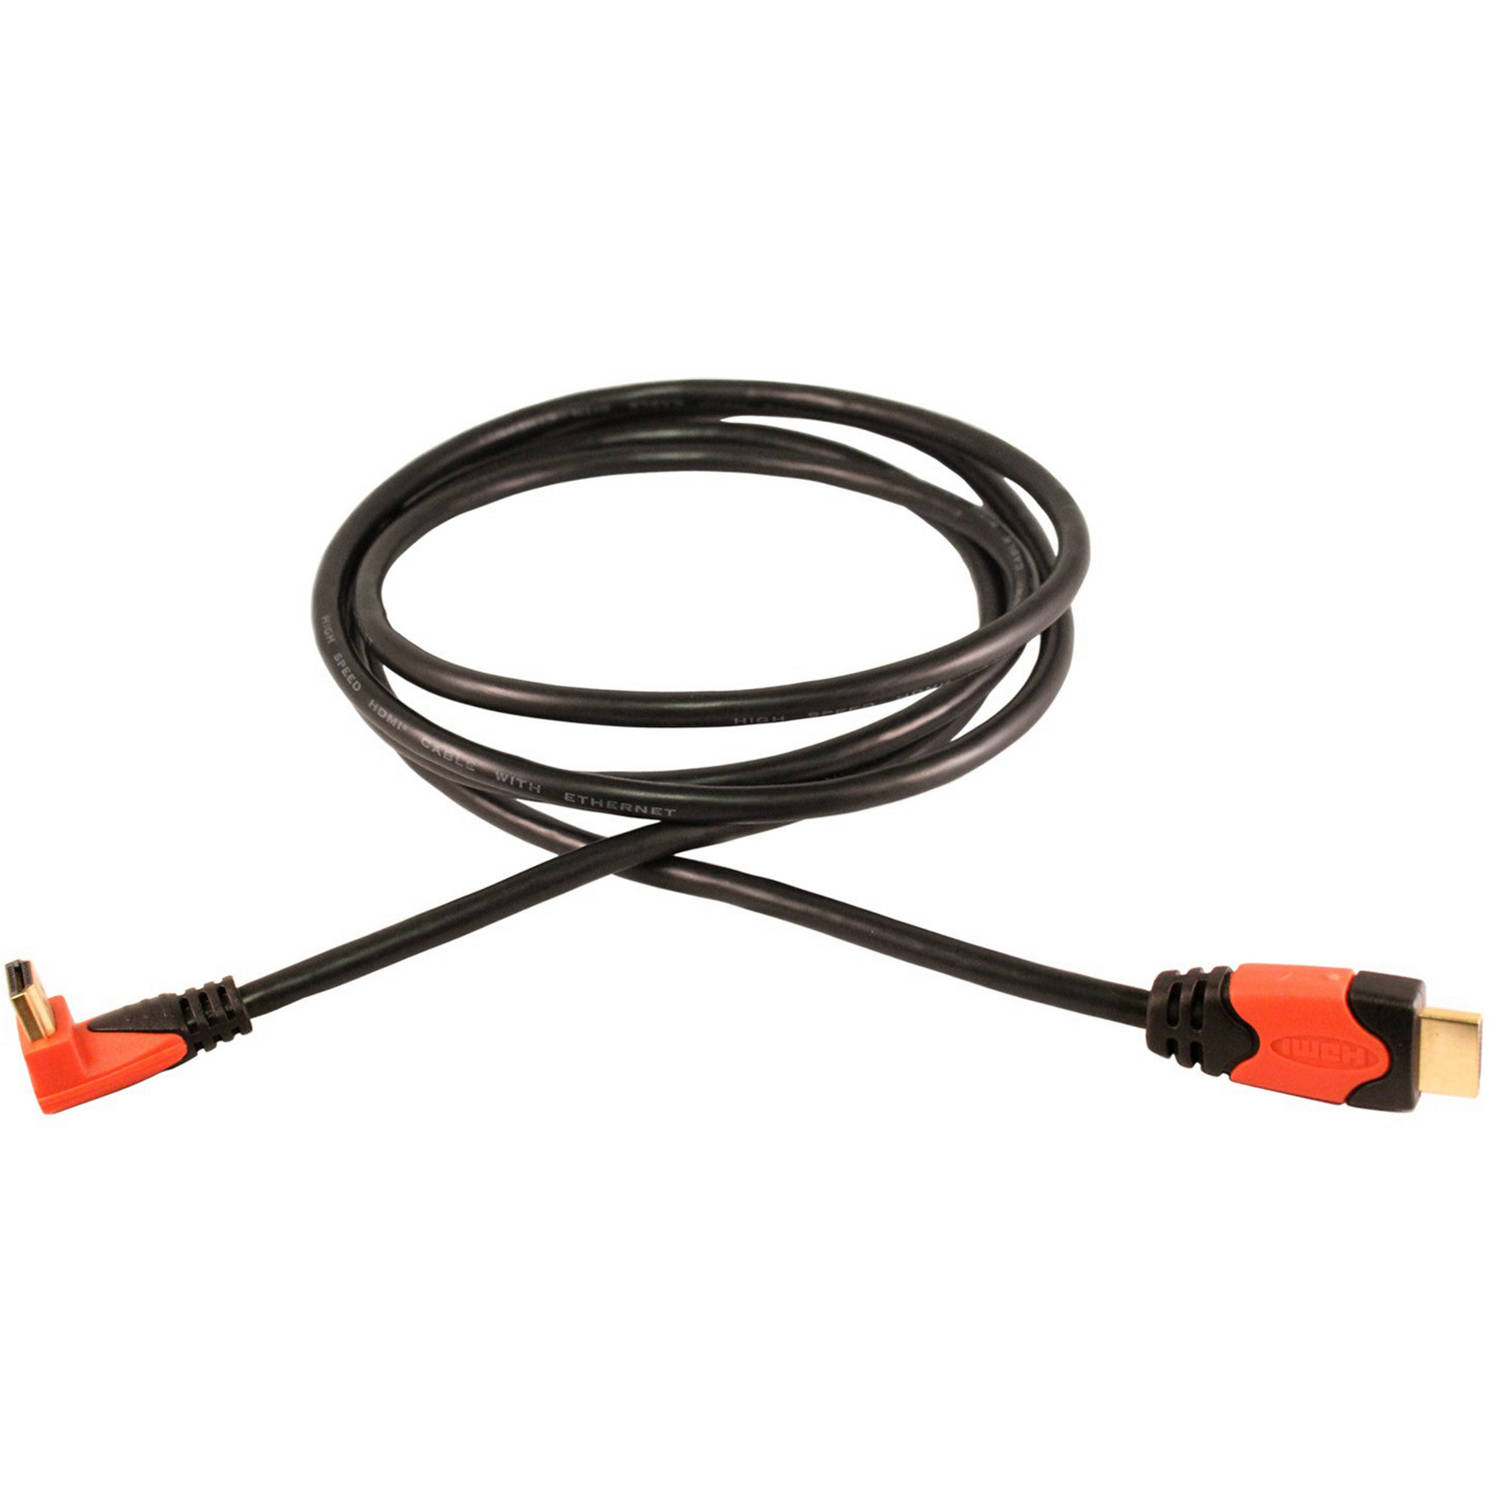 Electronic Master 12' HDMI Male to Male Cable, EMHD8312